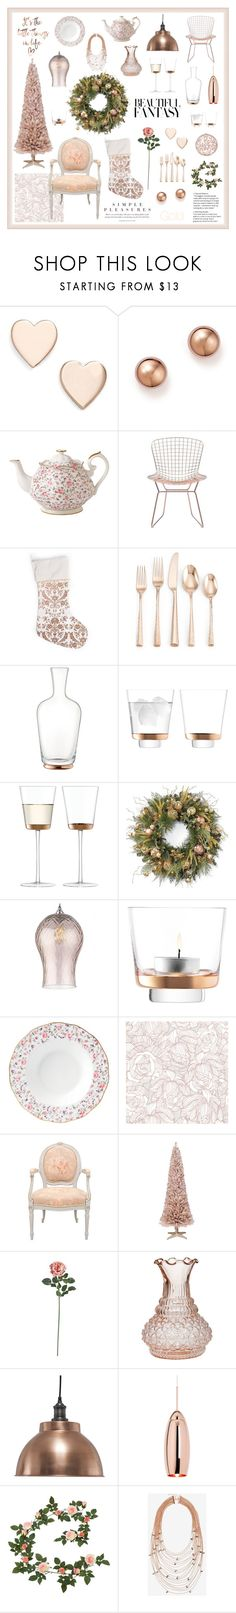 """""""Rose Gold Christmas"""" by magnolialily-prints ❤ liked on Polyvore featuring interior, interiors, interior design, home, home decor, interior decorating, Poppy Finch, Bloomingdale's, Royal Albert and Zuo"""